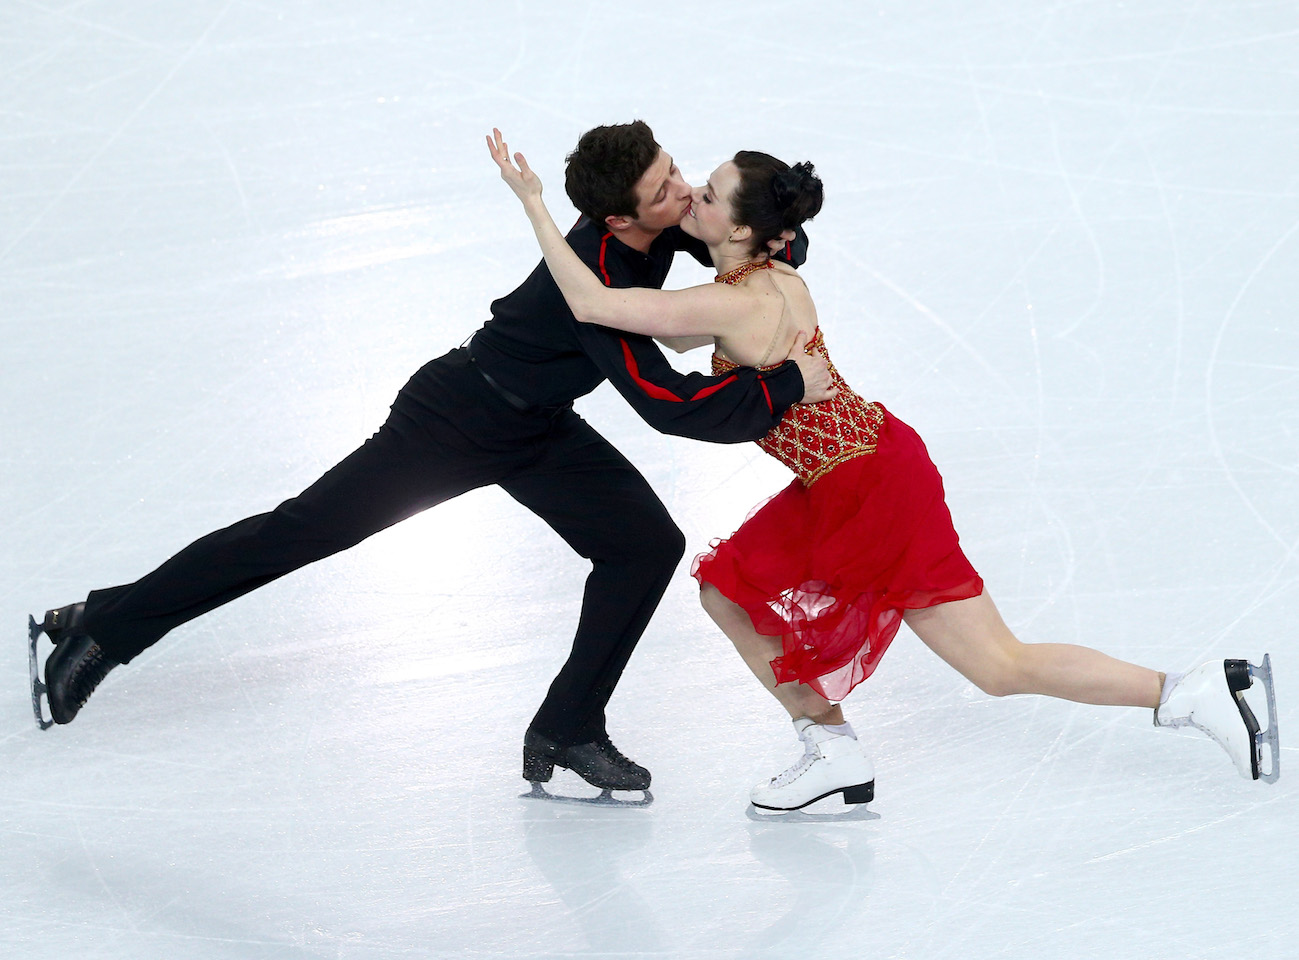 Are Scott and Tessa dating? These are the hottest photos of Canadian ice dancers Tessa Virtue and Canada's Scott Moir